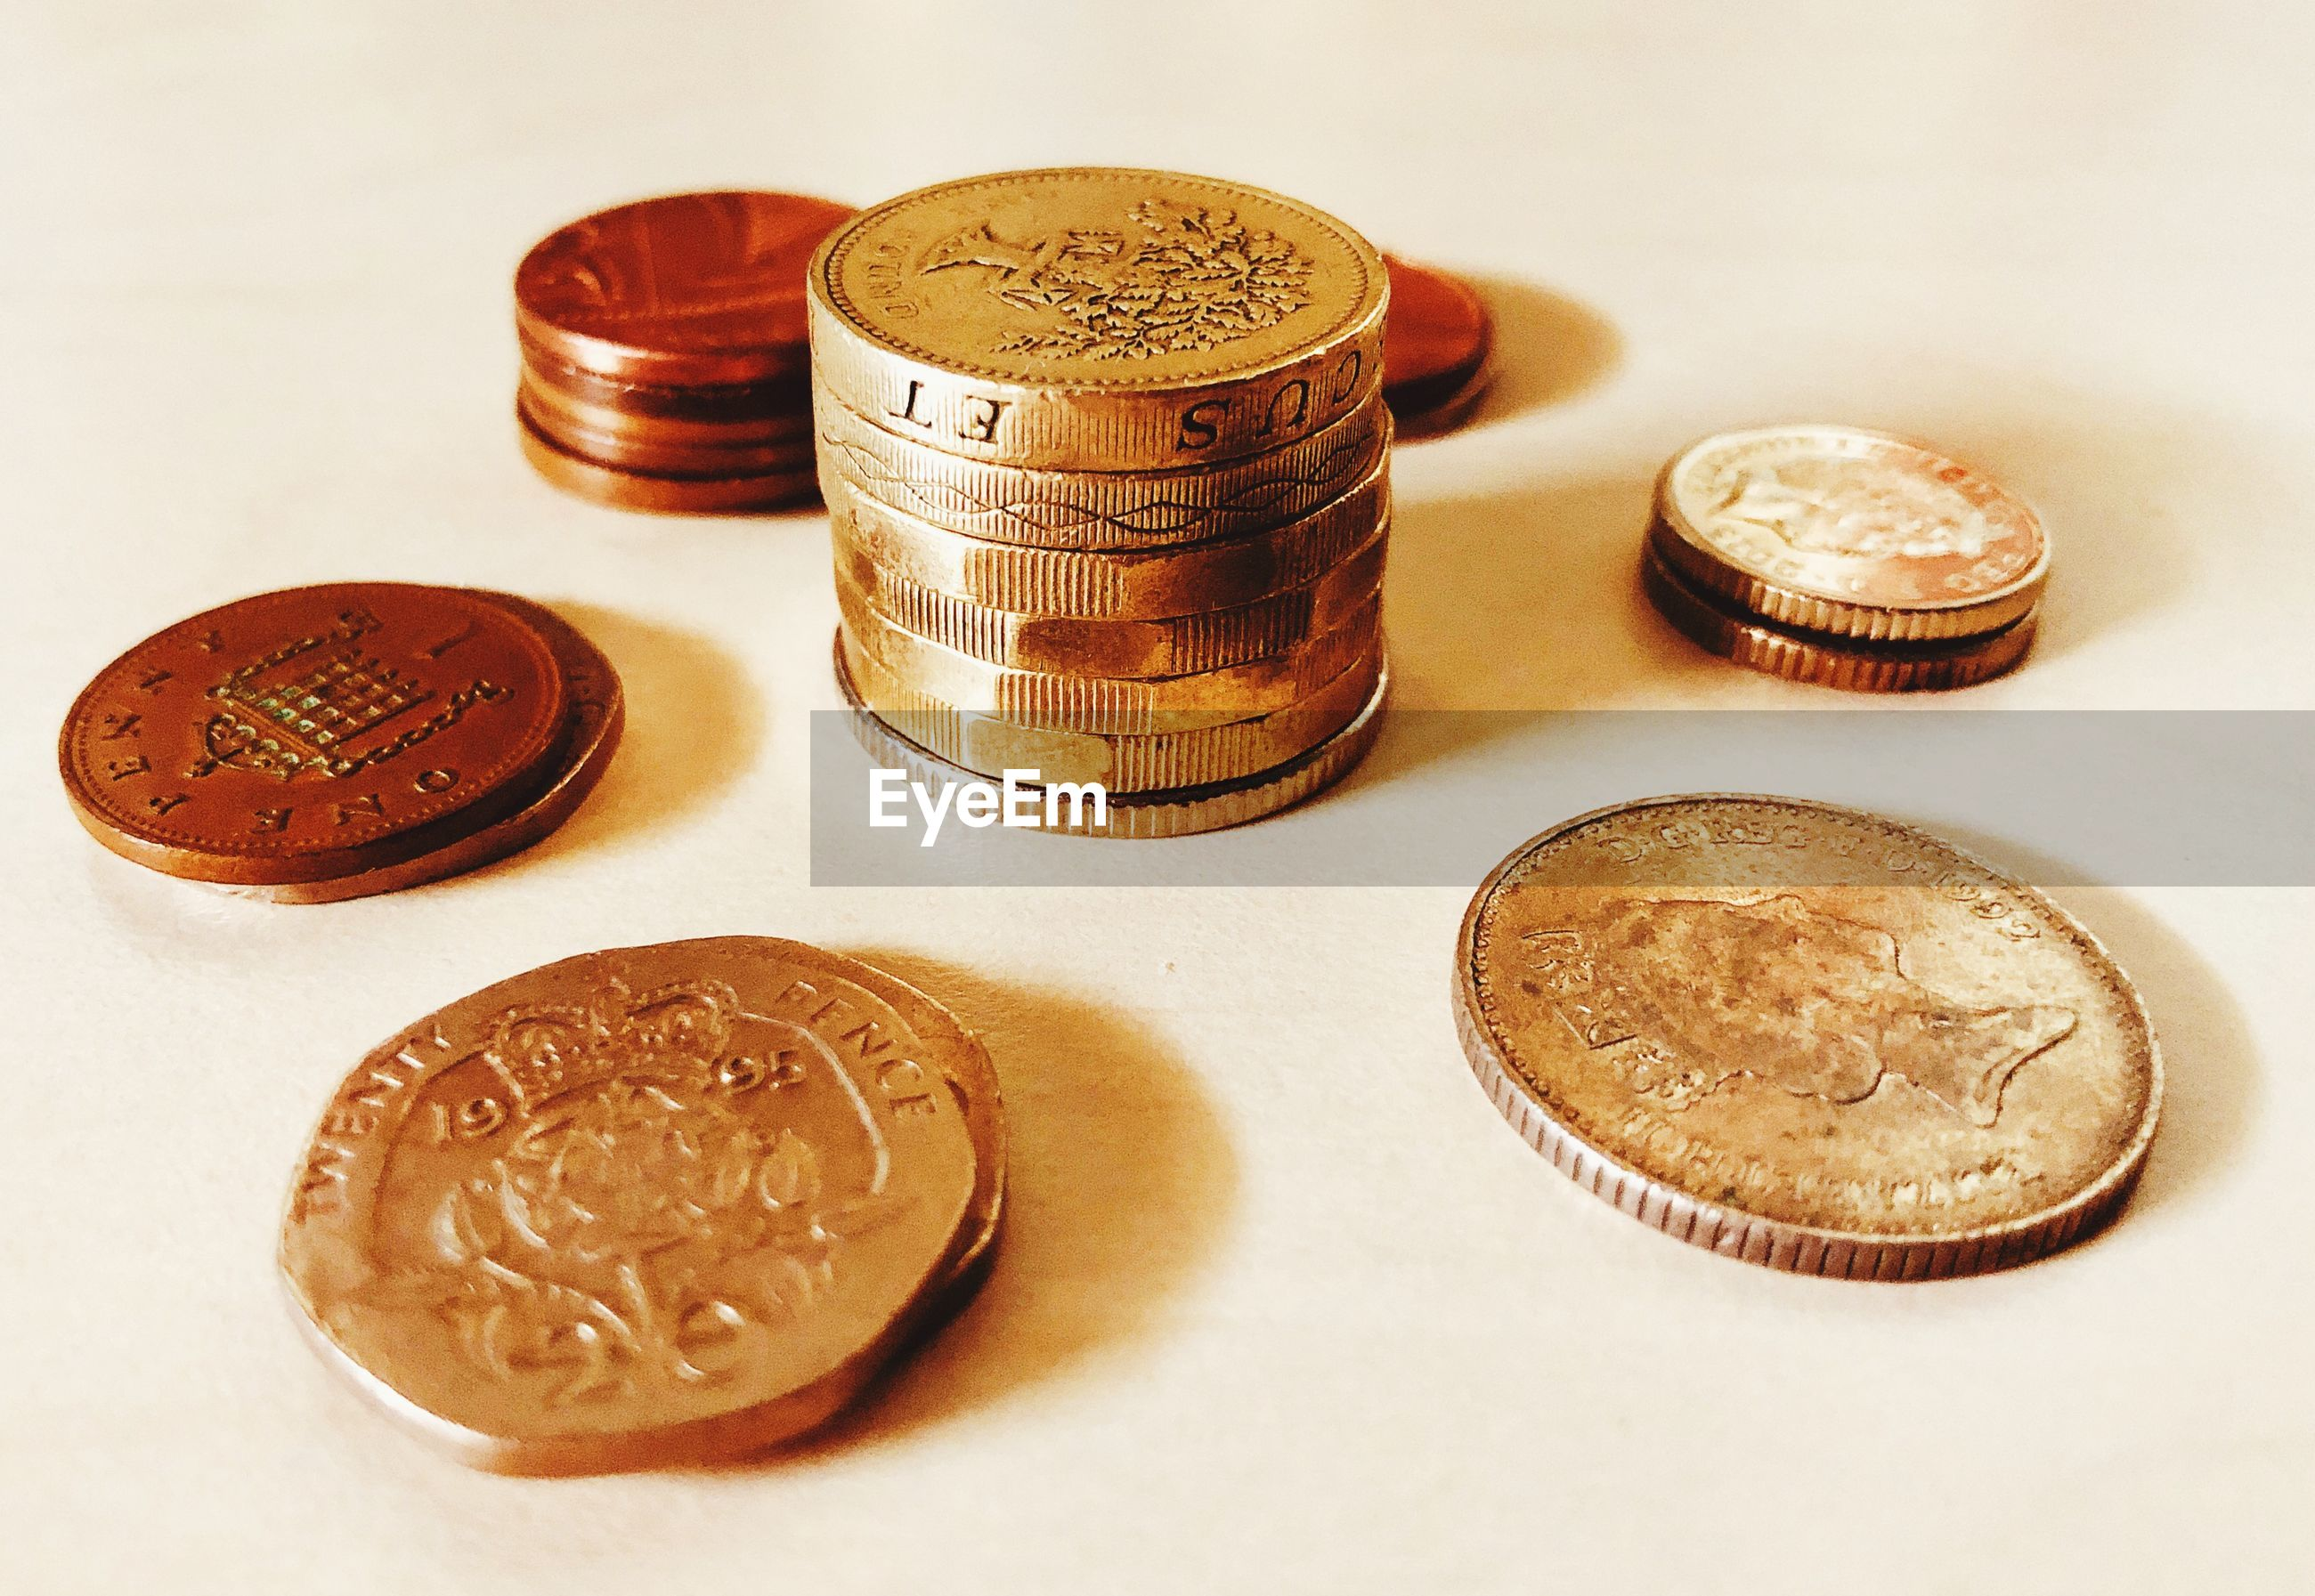 HIGH ANGLE VIEW OF COINS ON WHITE TABLE